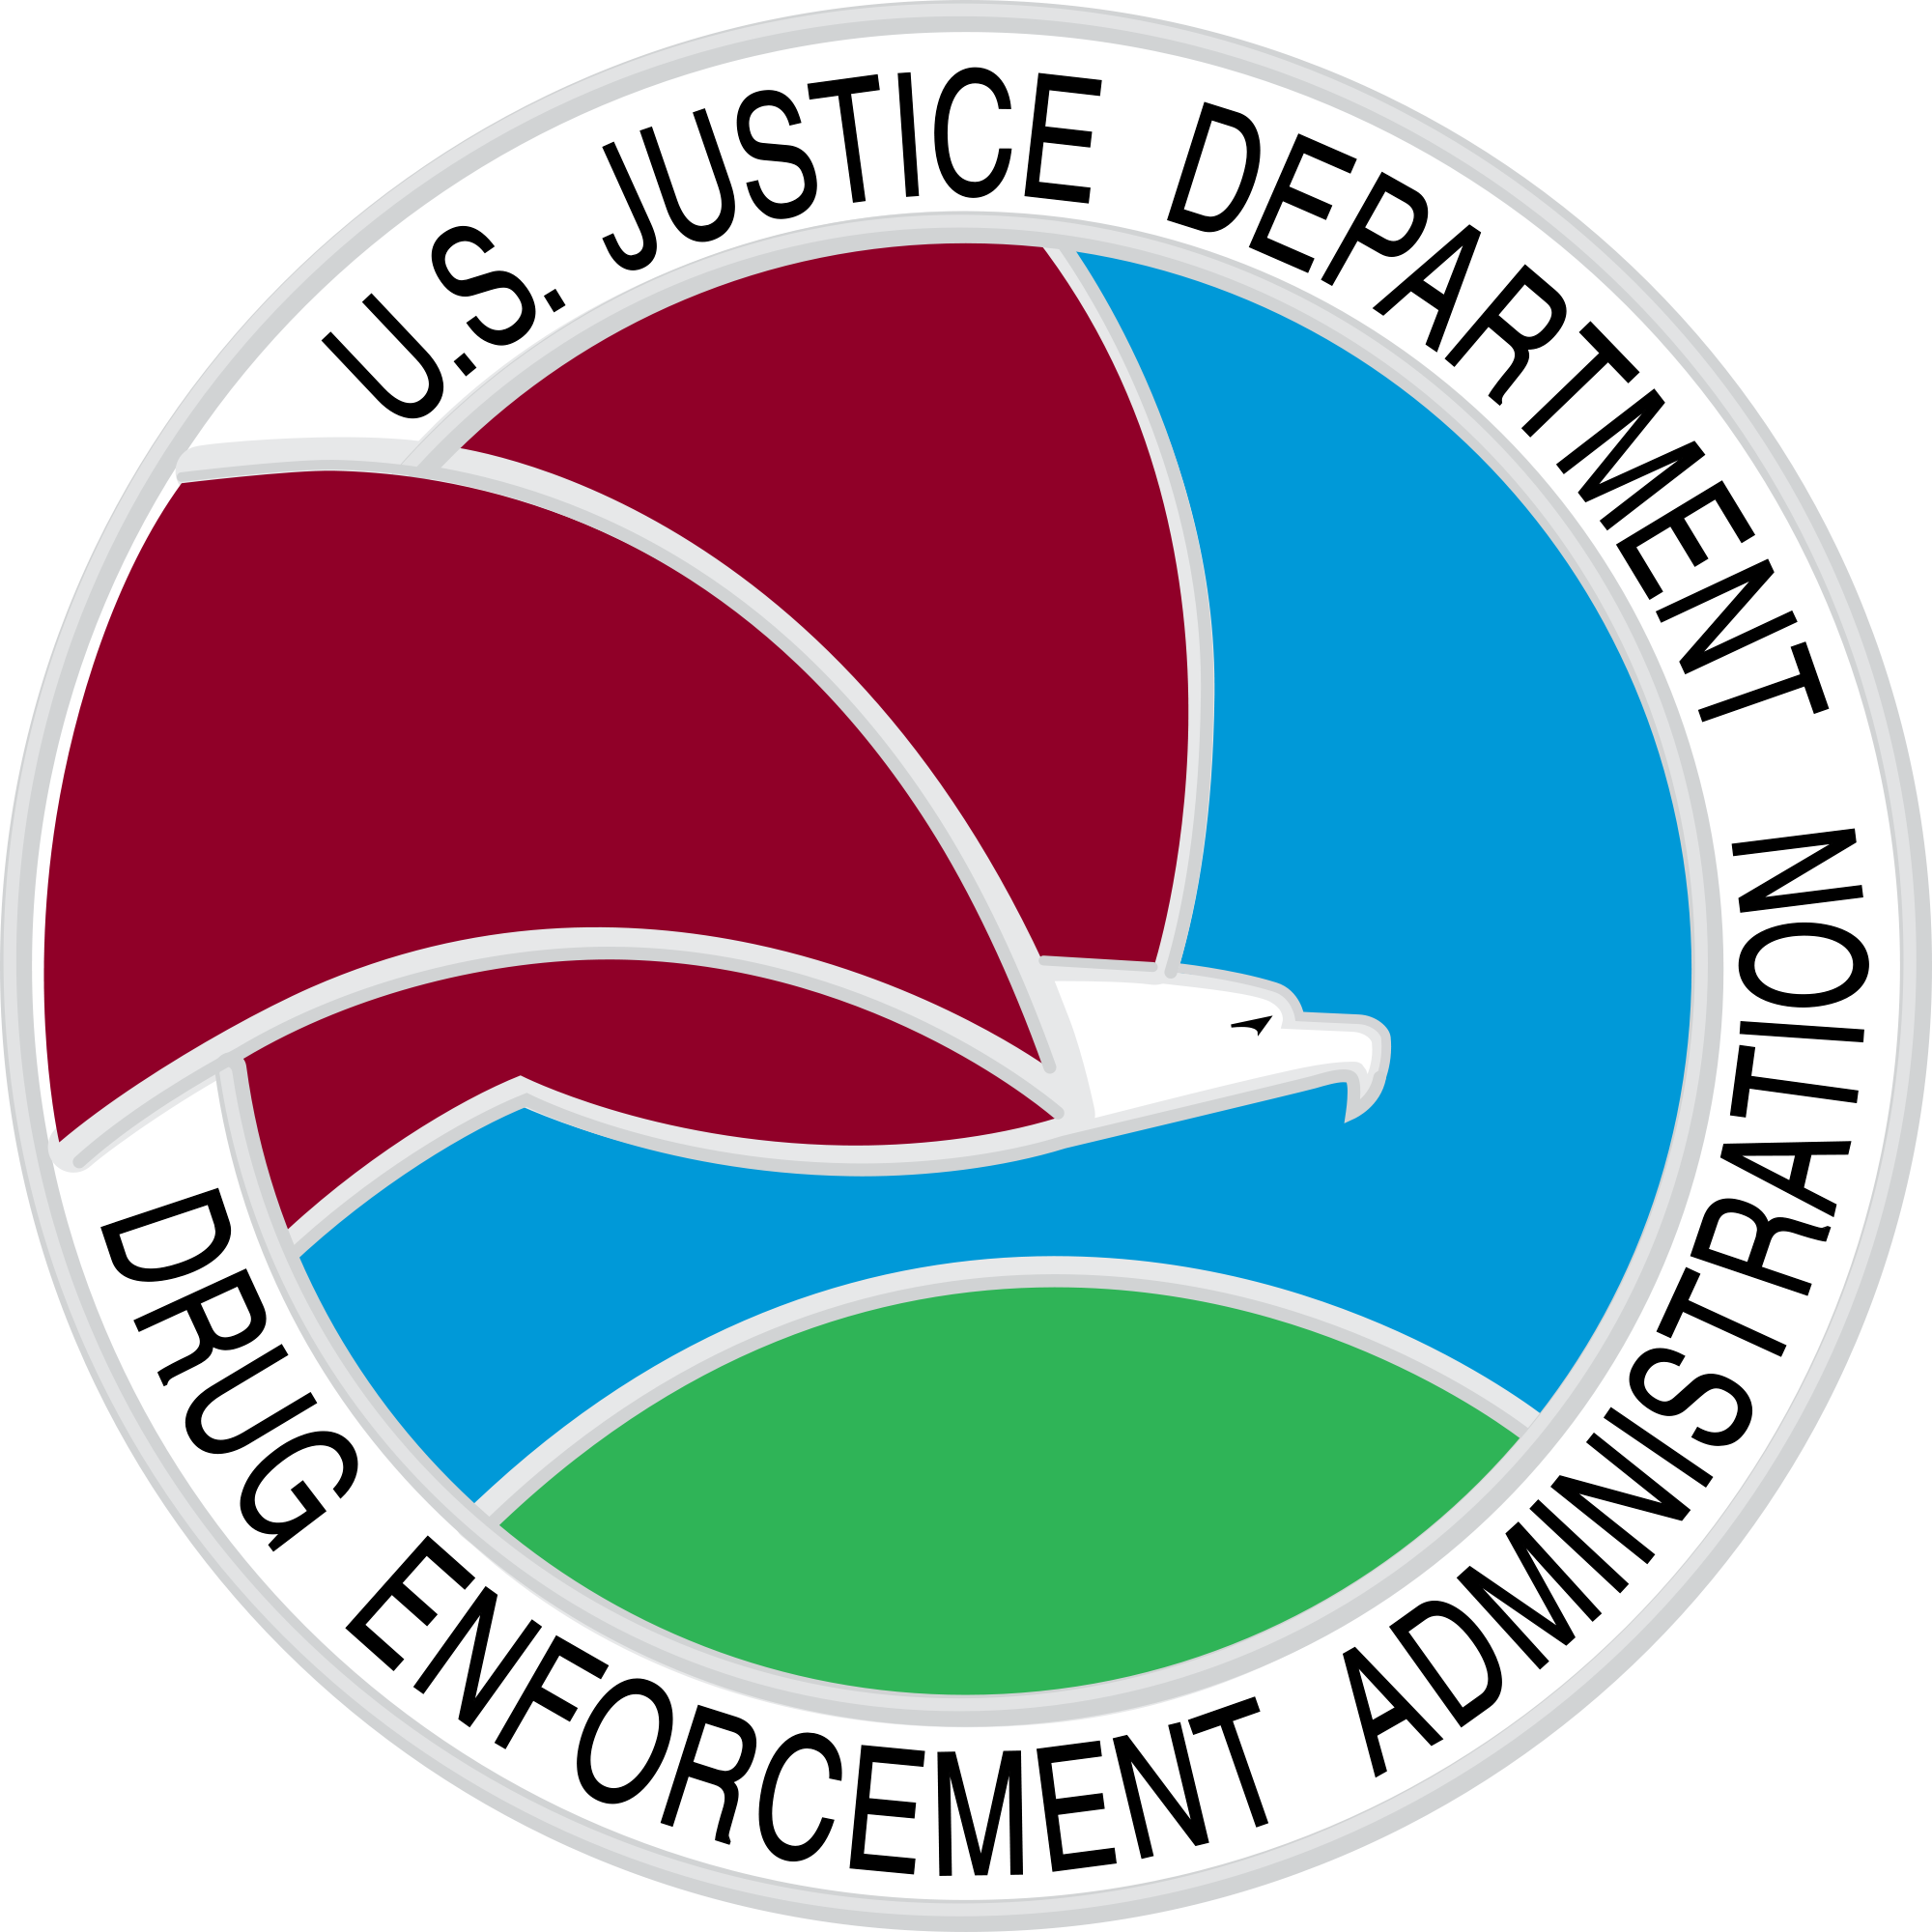 De Drug Enforcement Administration